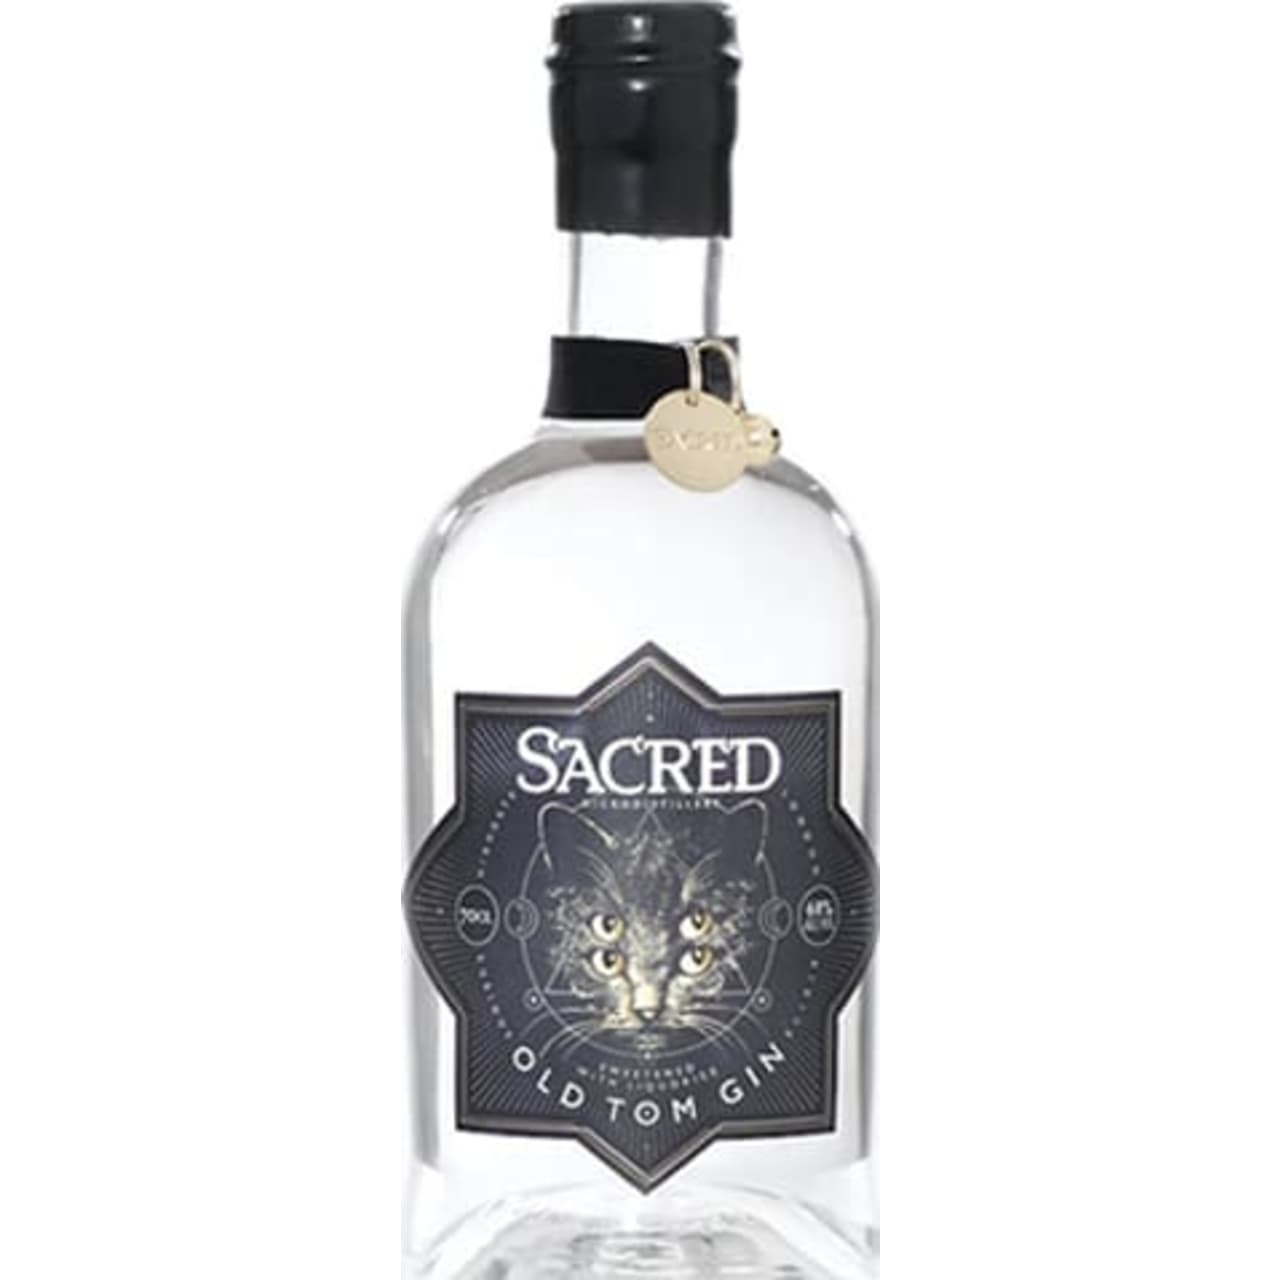 Product Image - Sacred Old Tom Gin